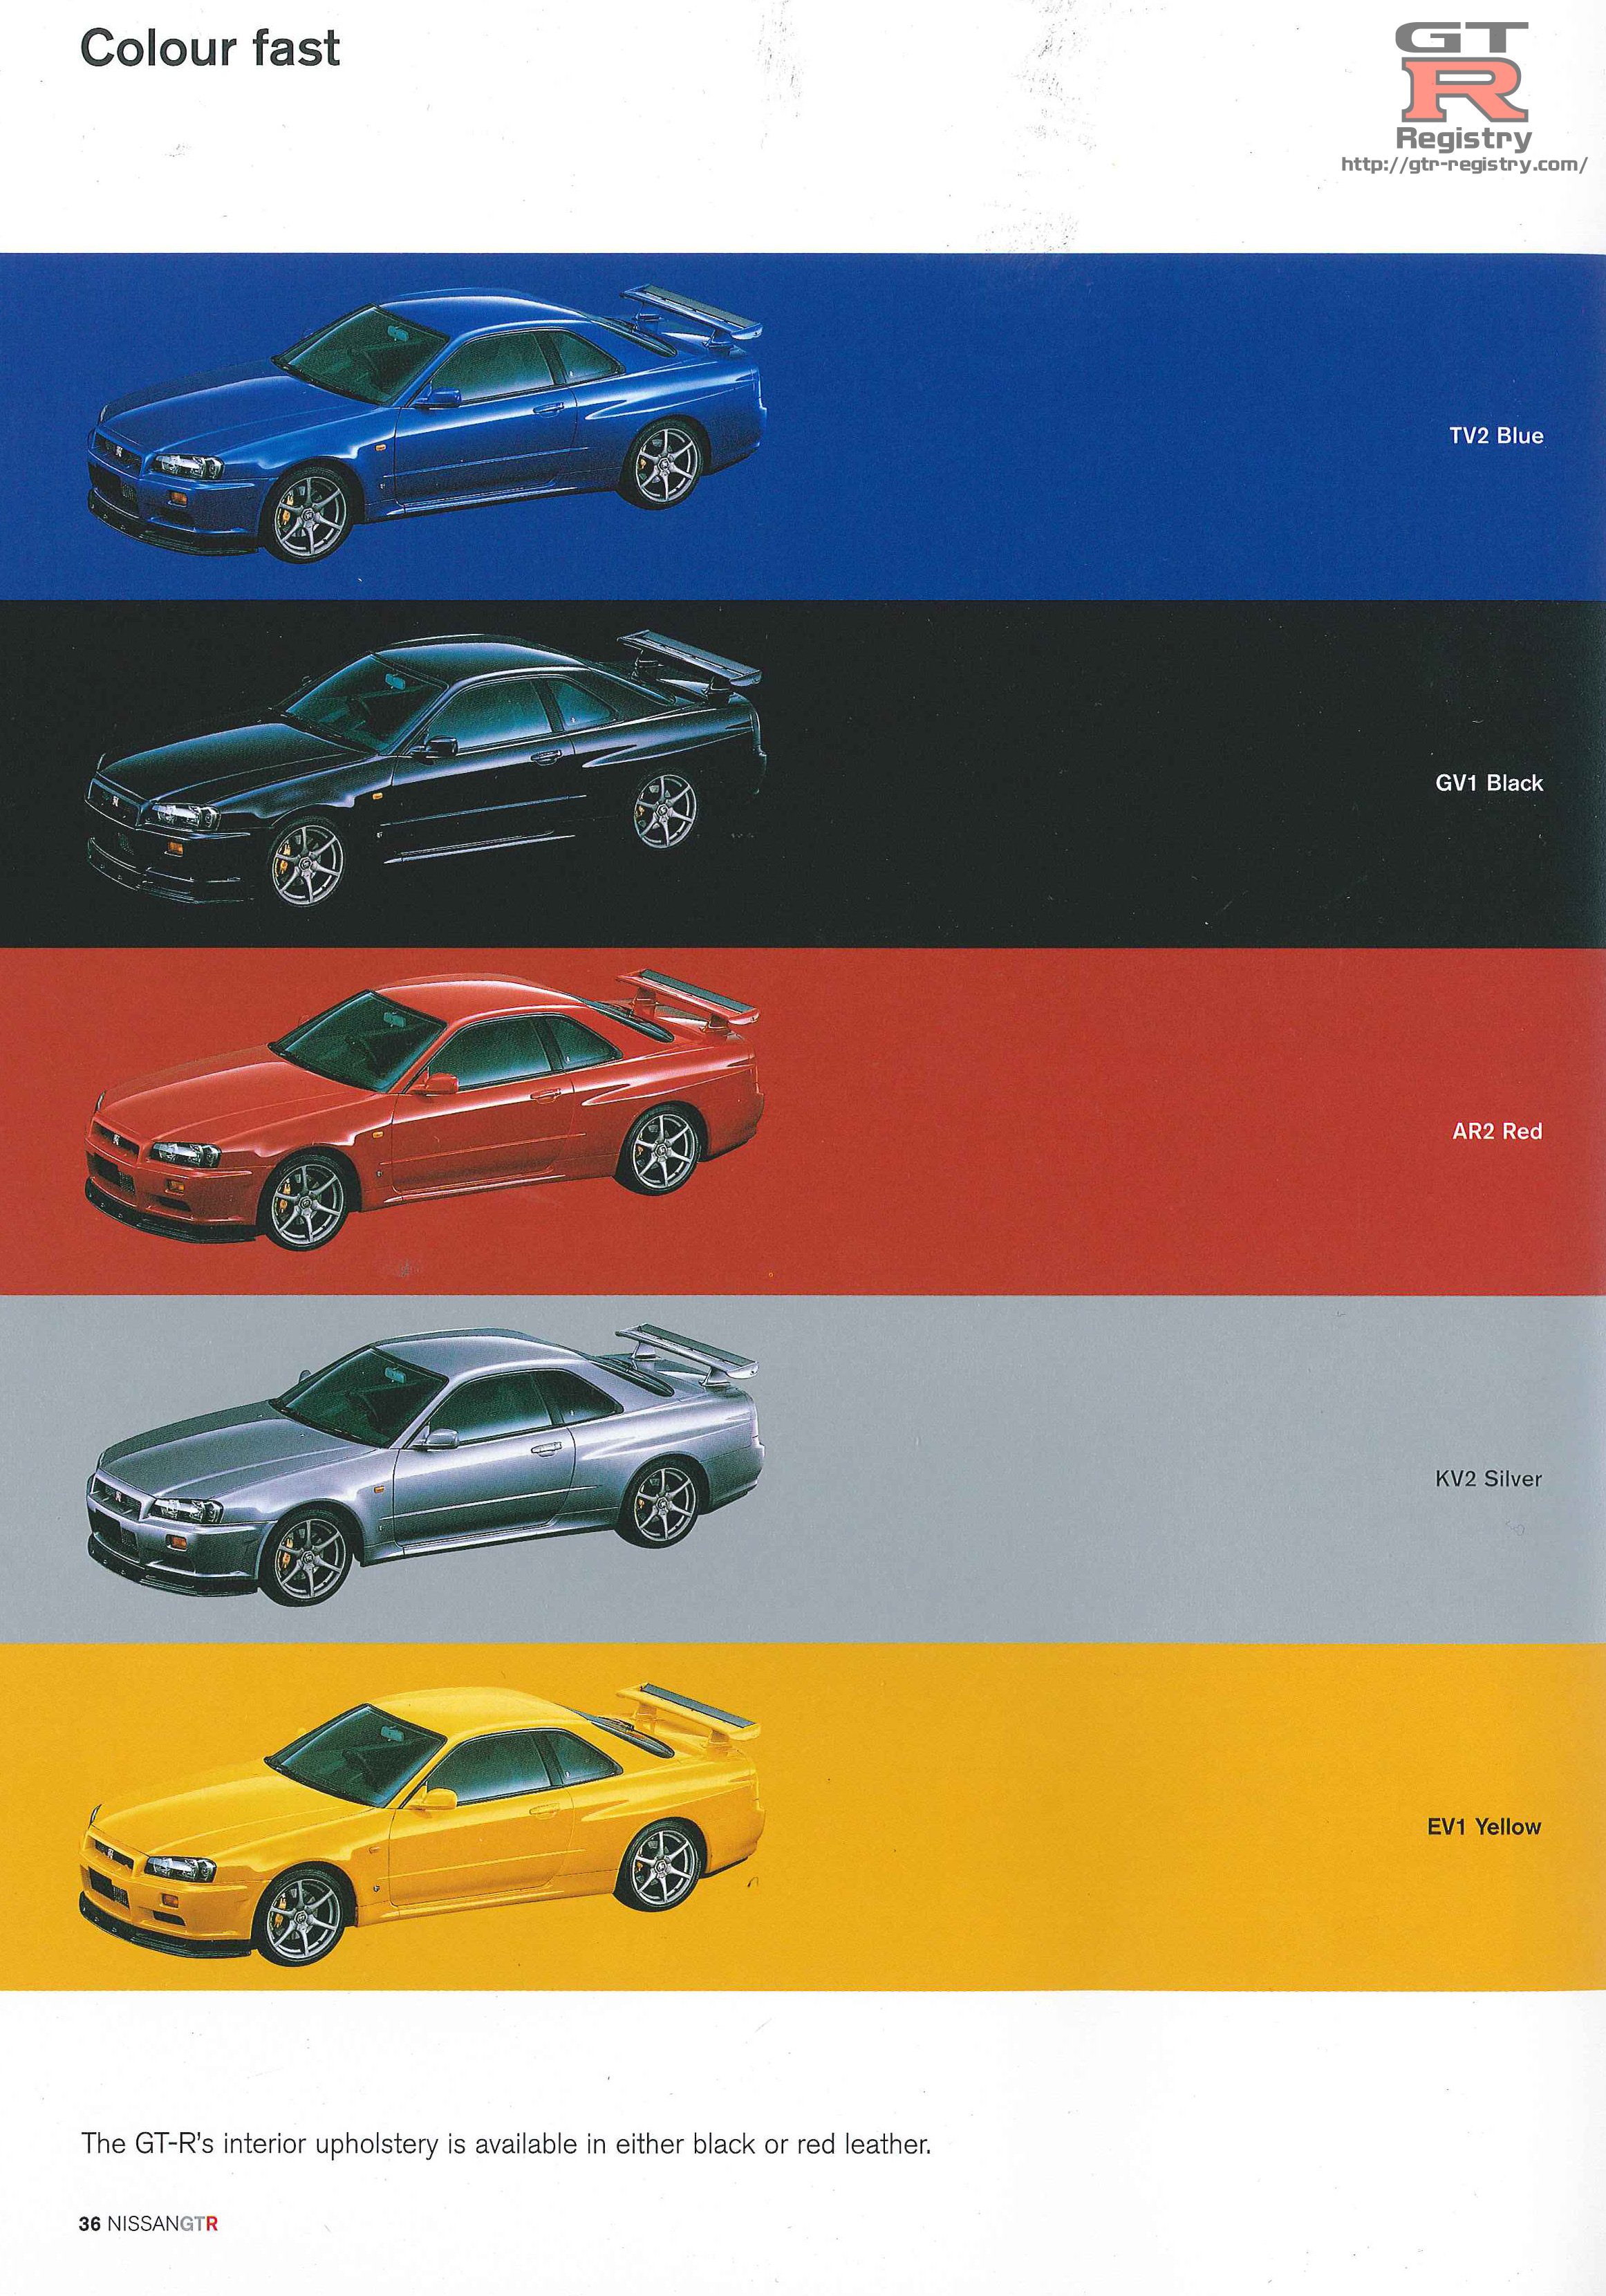 Colour Brochure Charts Supplied With Thanks To Rajeel Mrfijigold